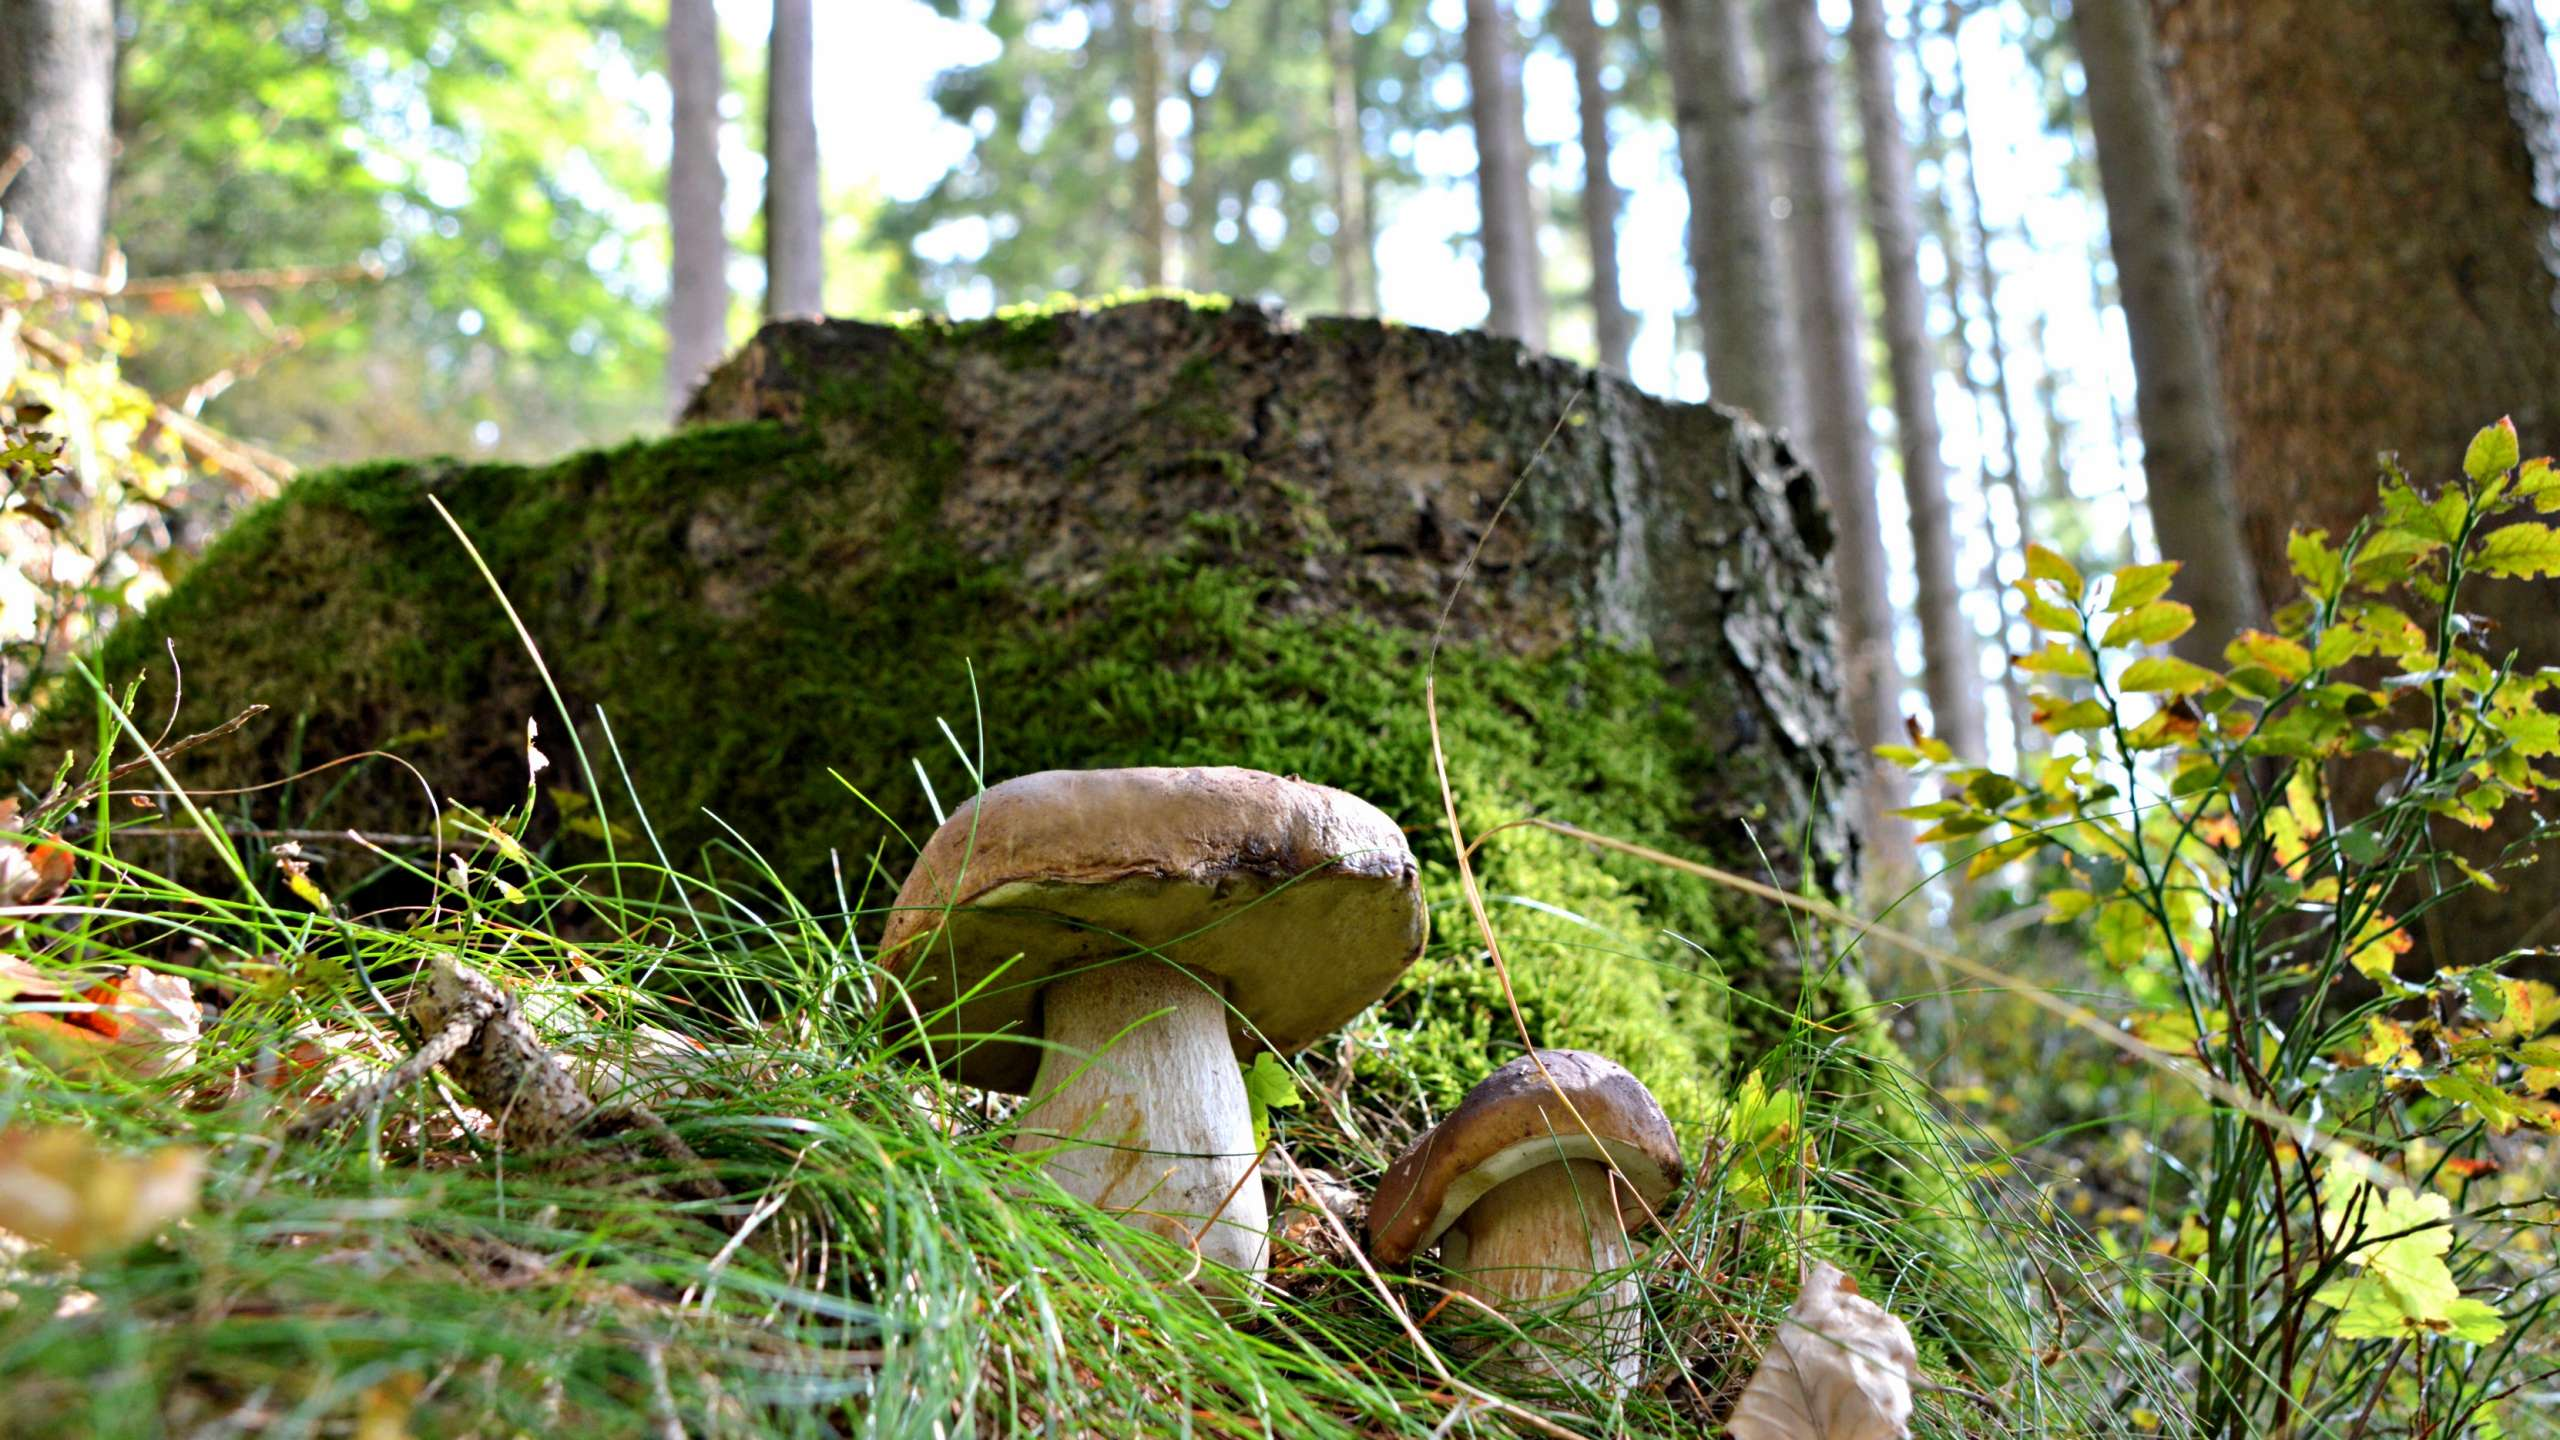 Traube Tonbach - Mushrooms in the Black Forest